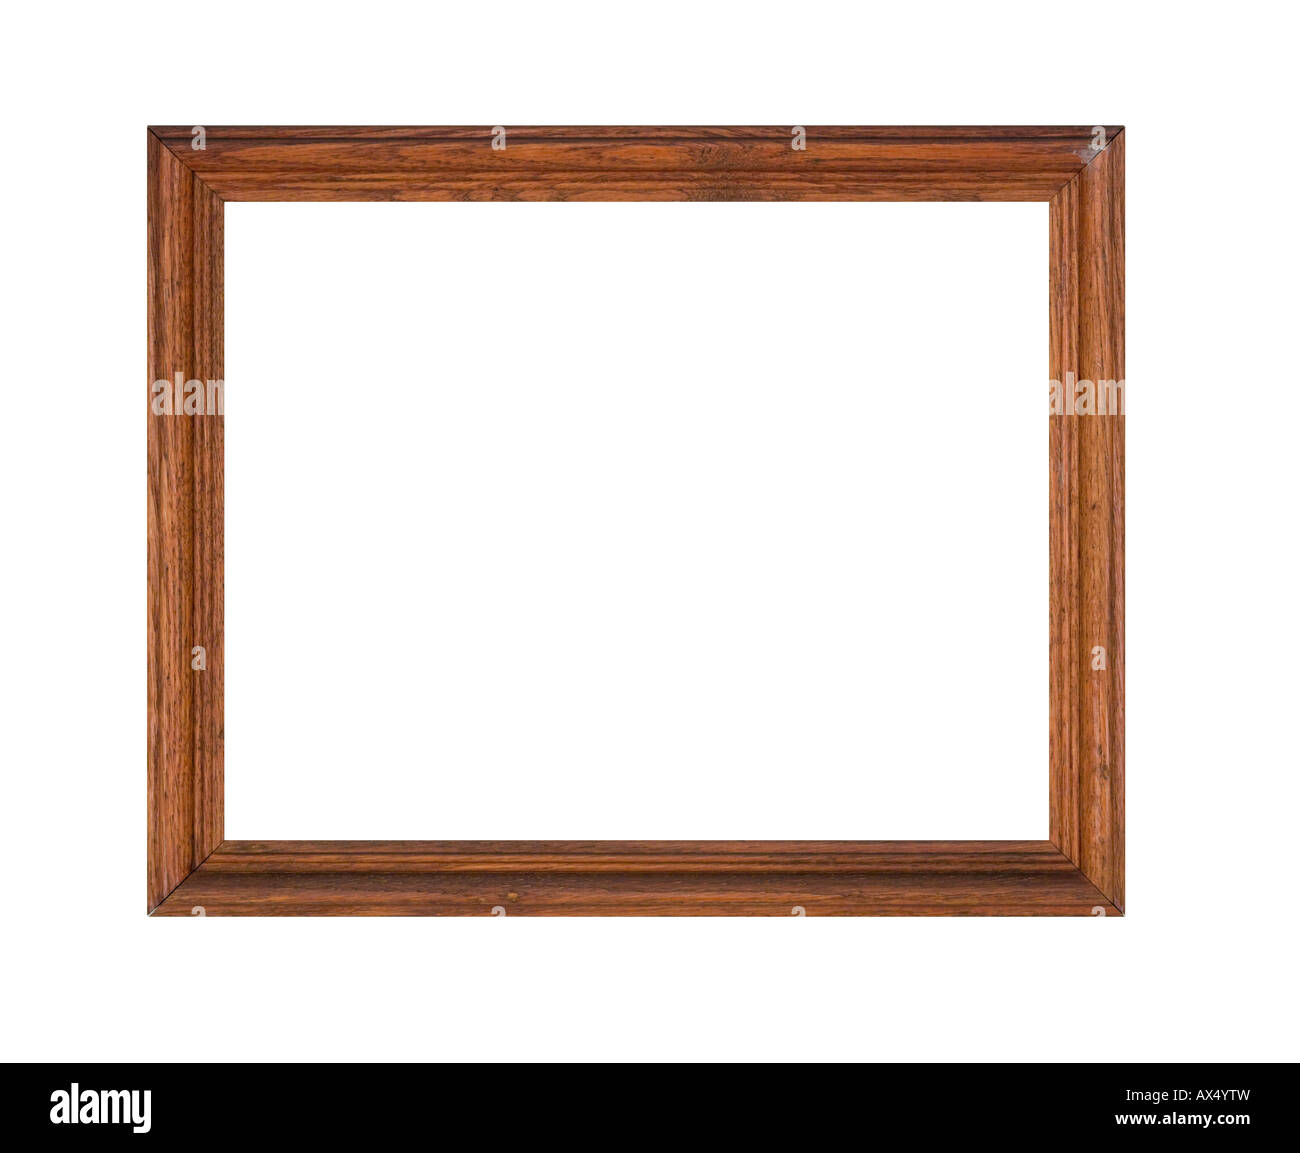 Picture frame of oak wood in rough distressed condition, a junk shop find isolated on white. - Stock Image